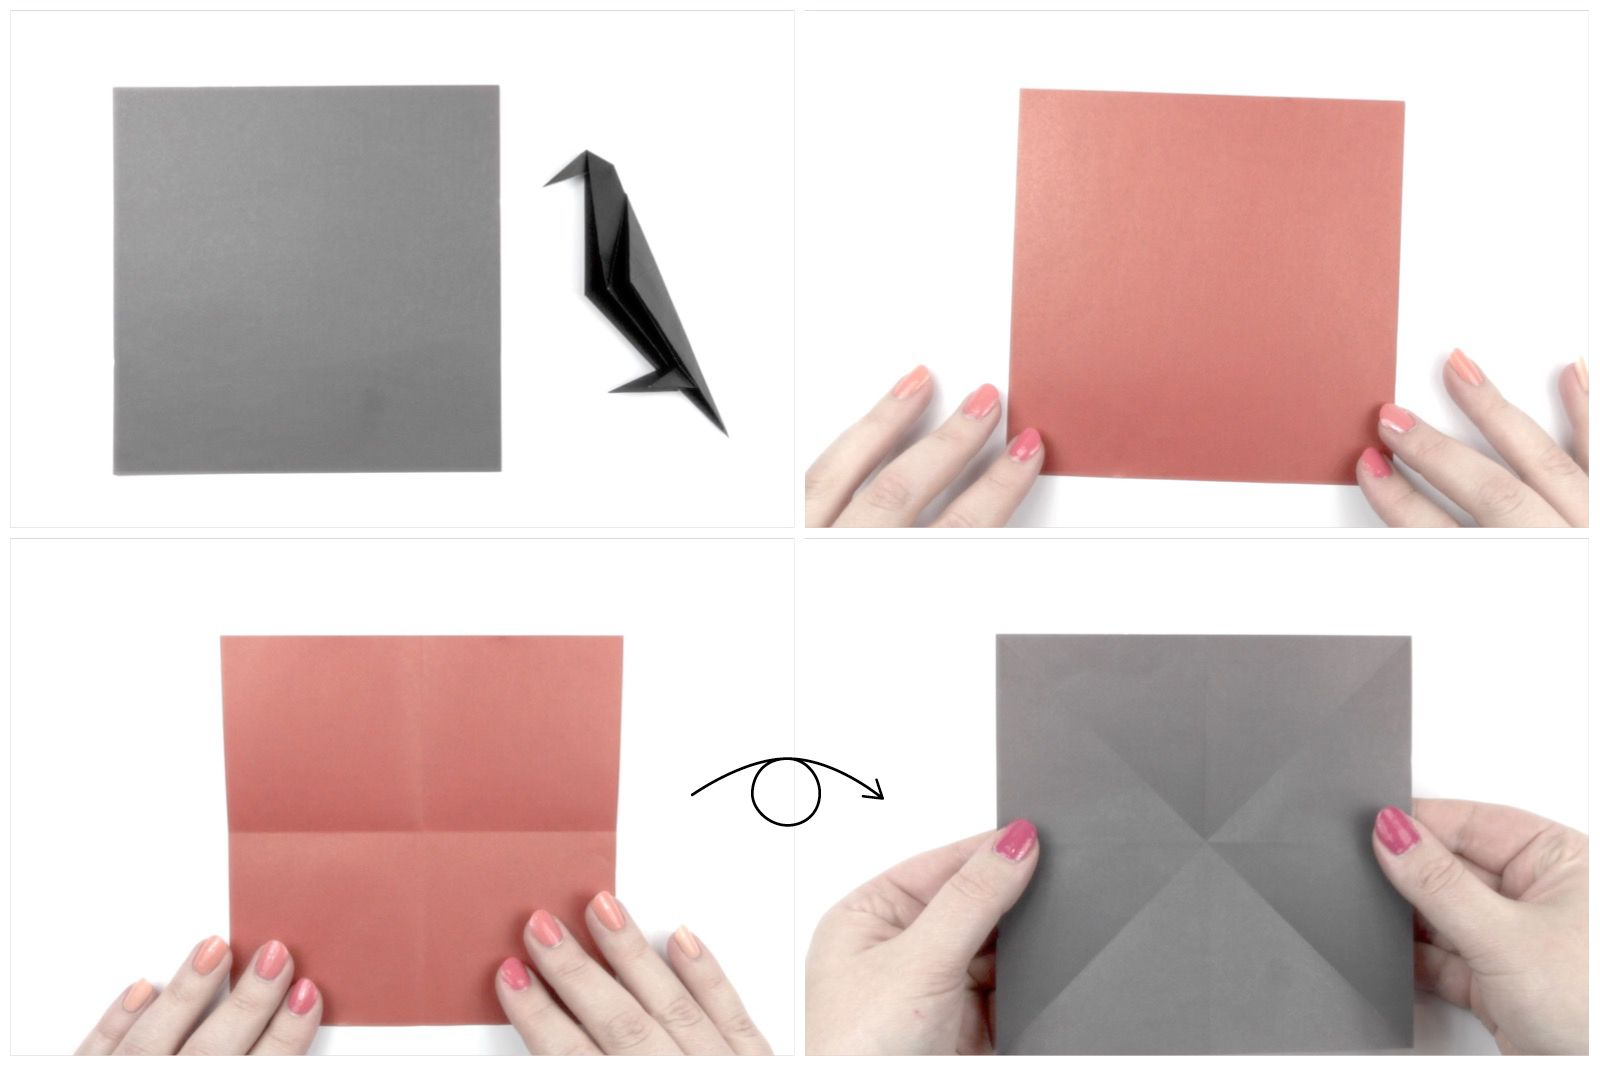 Beginning folds for an origami crow